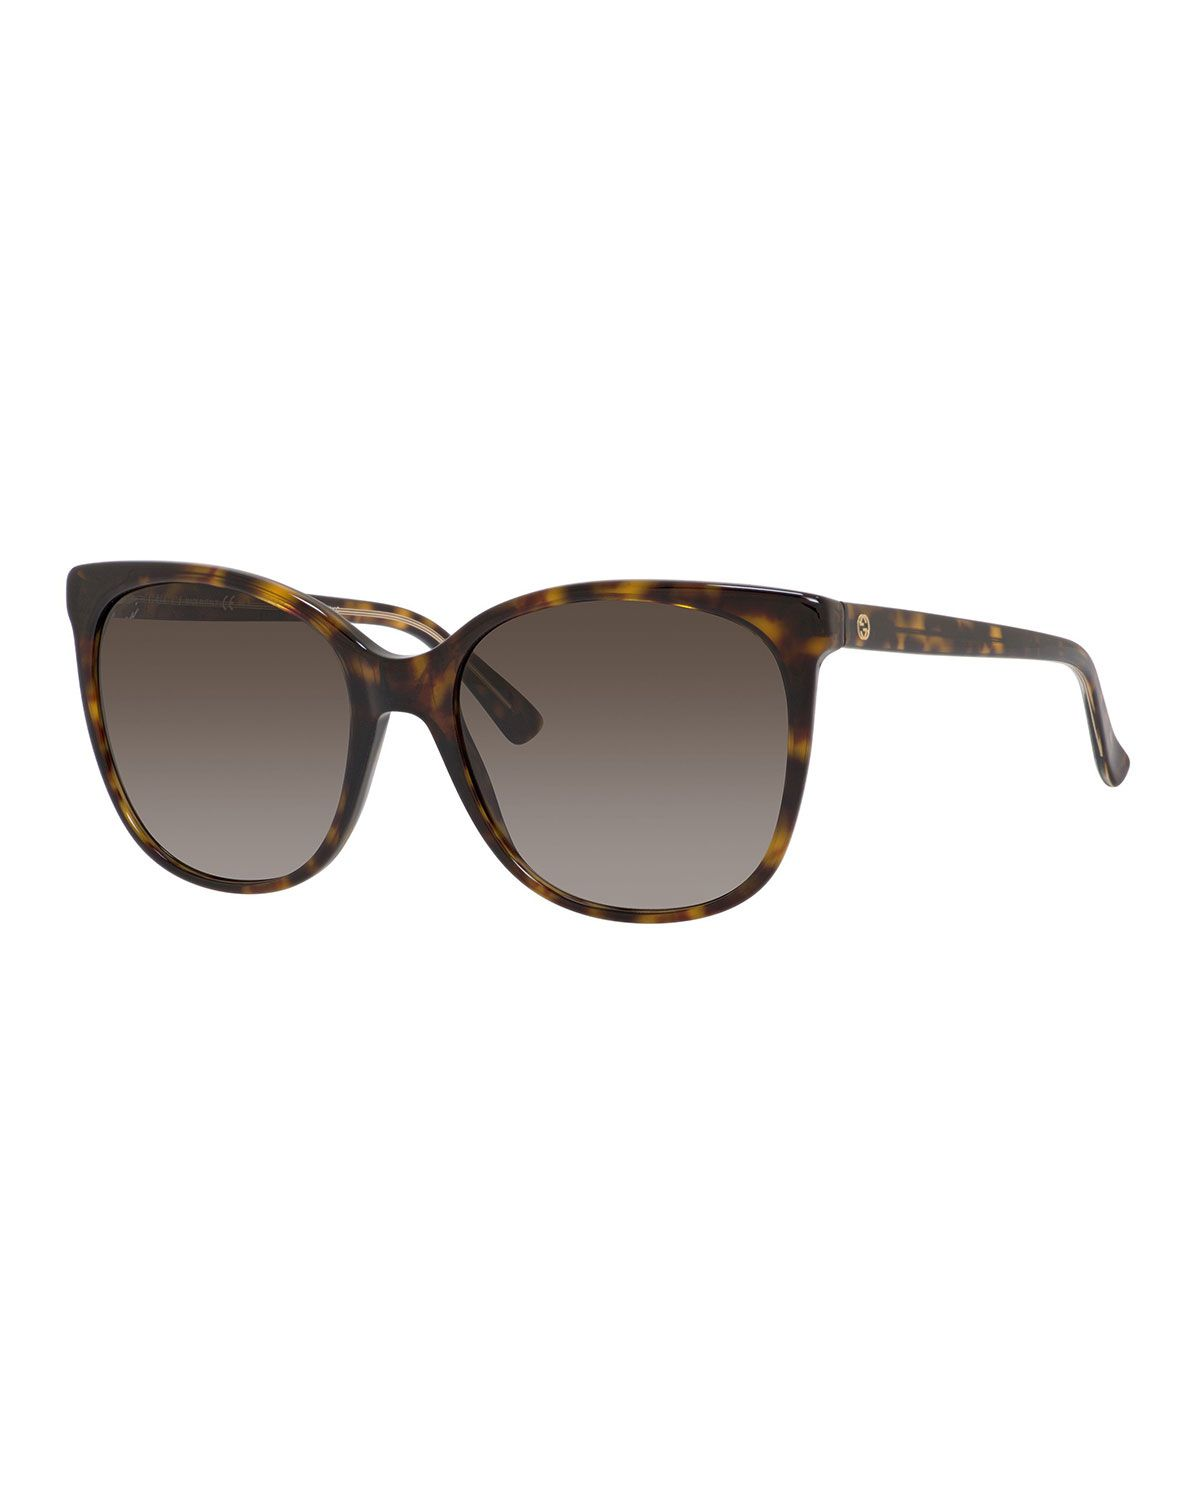 745a04cd903 Gucci Gradient Squared Cat-Eye Sunglasses